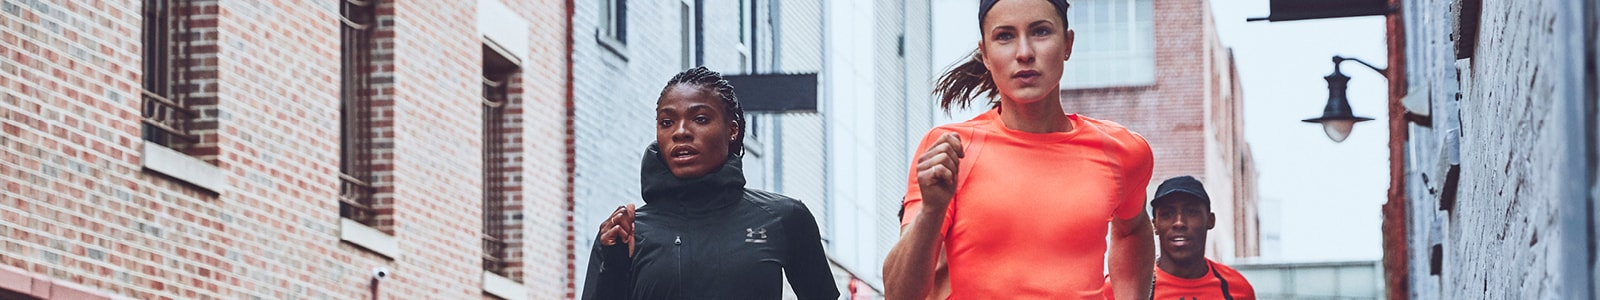 Under Armour's banner